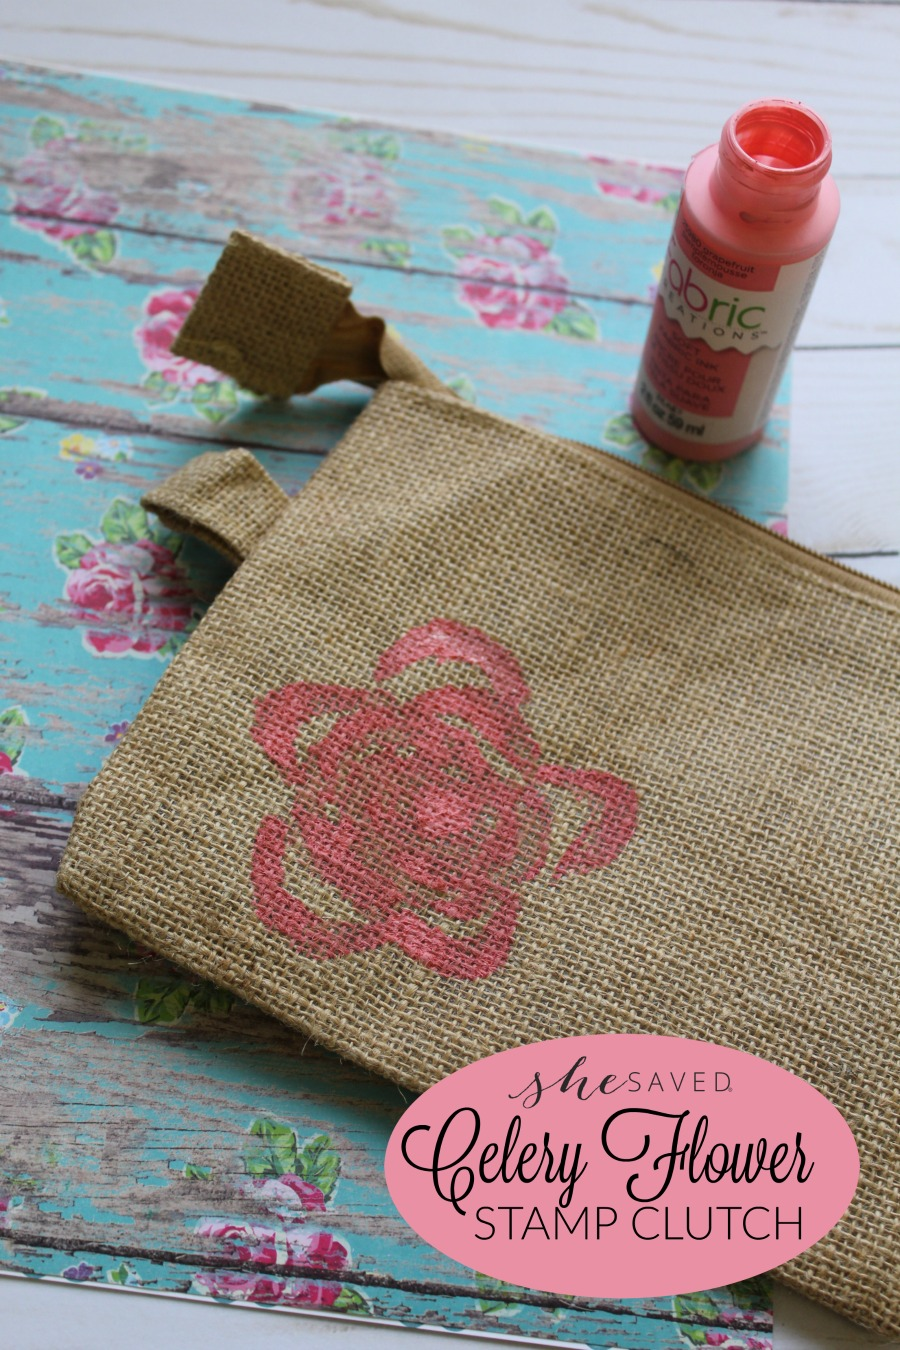 Such a fun and easy craft, this Celery Flower stamp clutch is such a cute and inexpensive DIY project, great for Mother's Day!